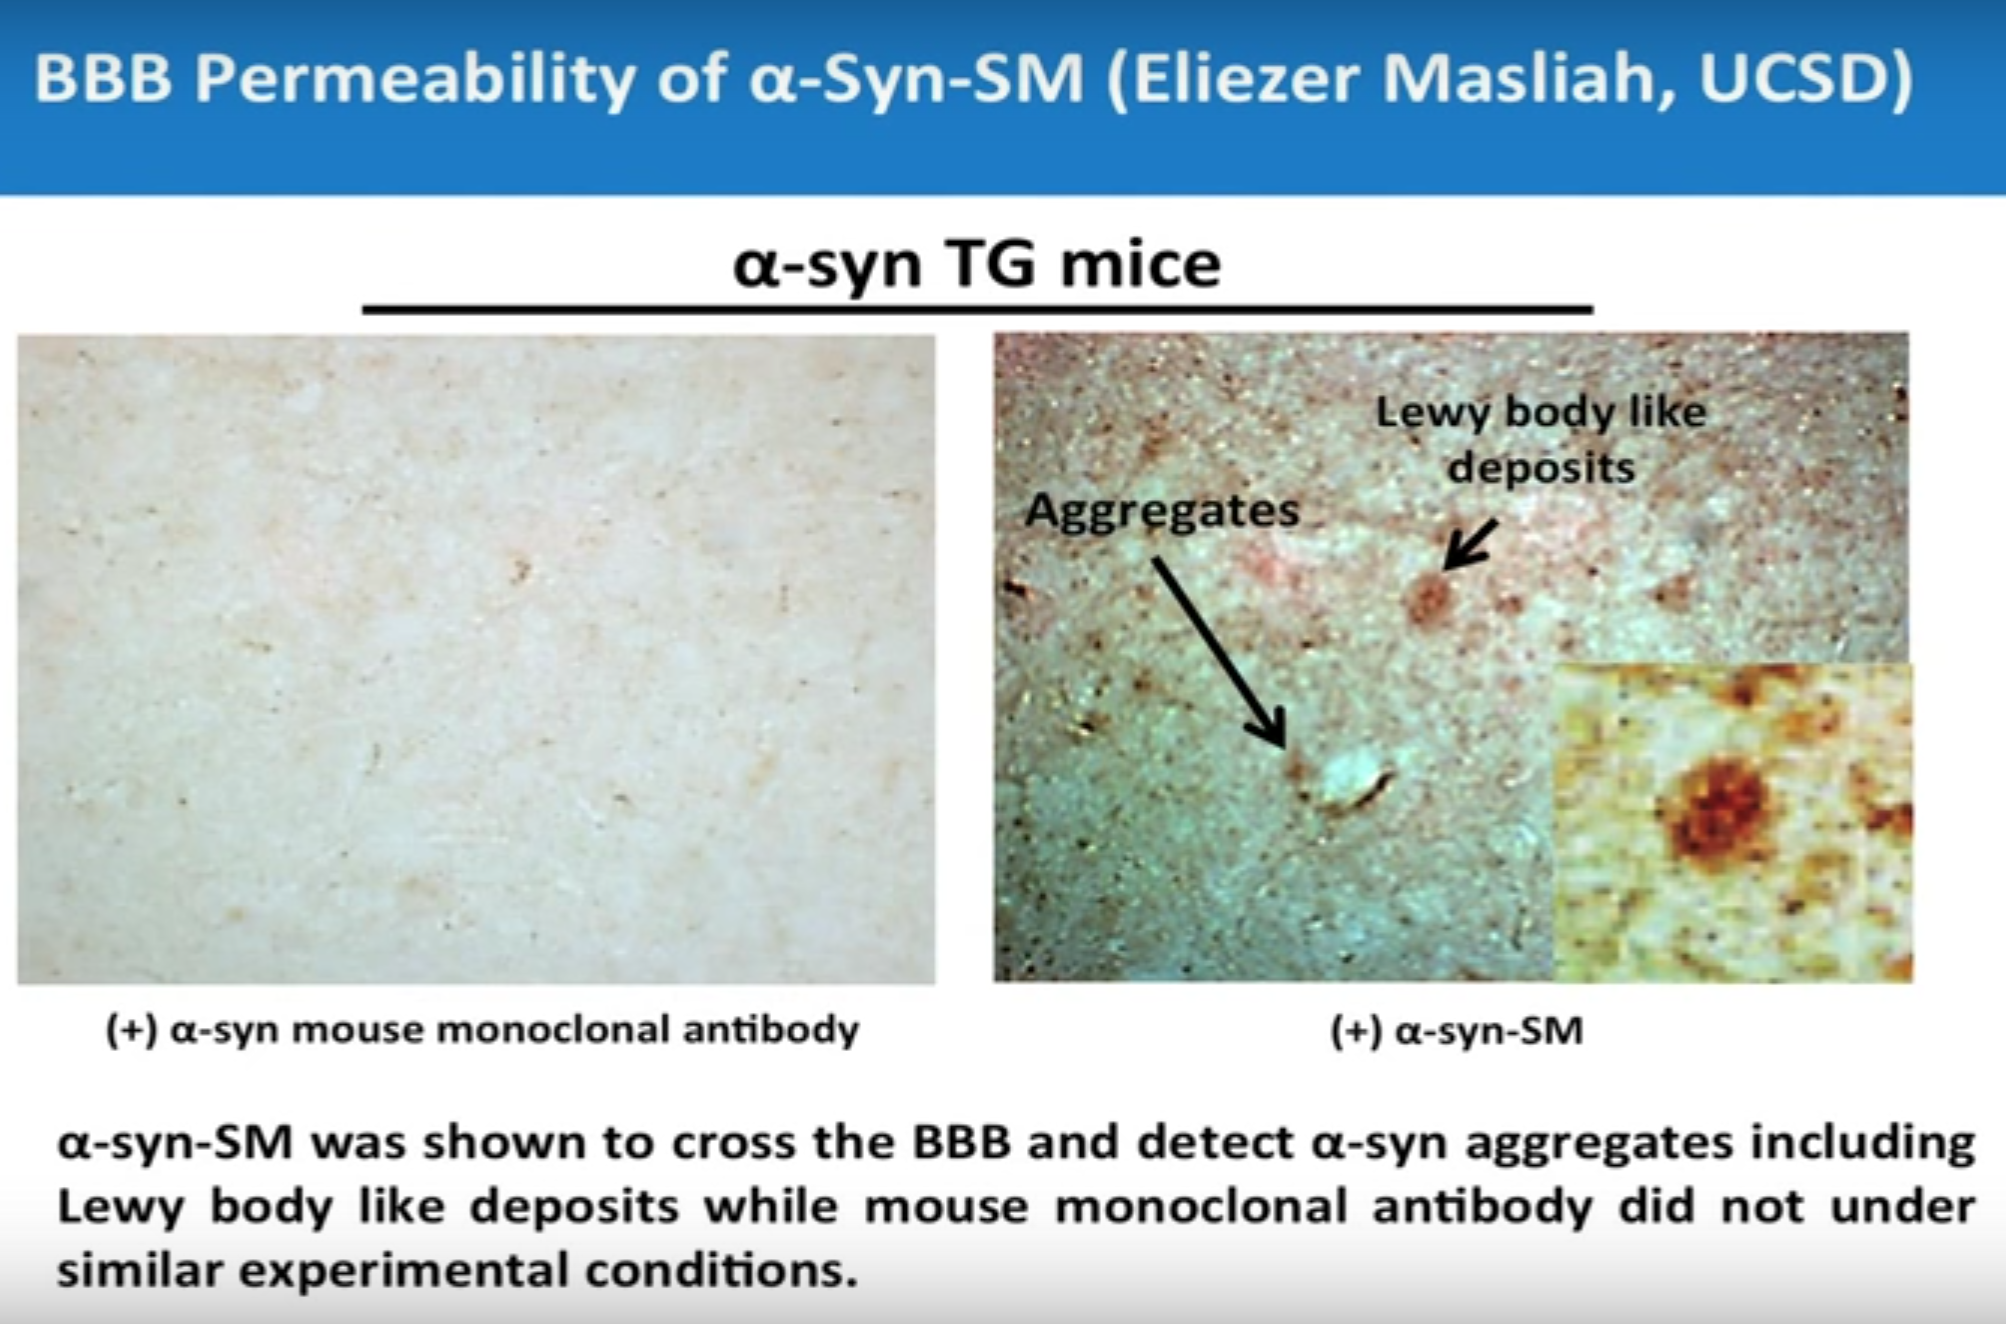 Third Party Validation of BBB Permeability and Target Specificity of SMs by Dr. Eliezer Masliah, UCSD